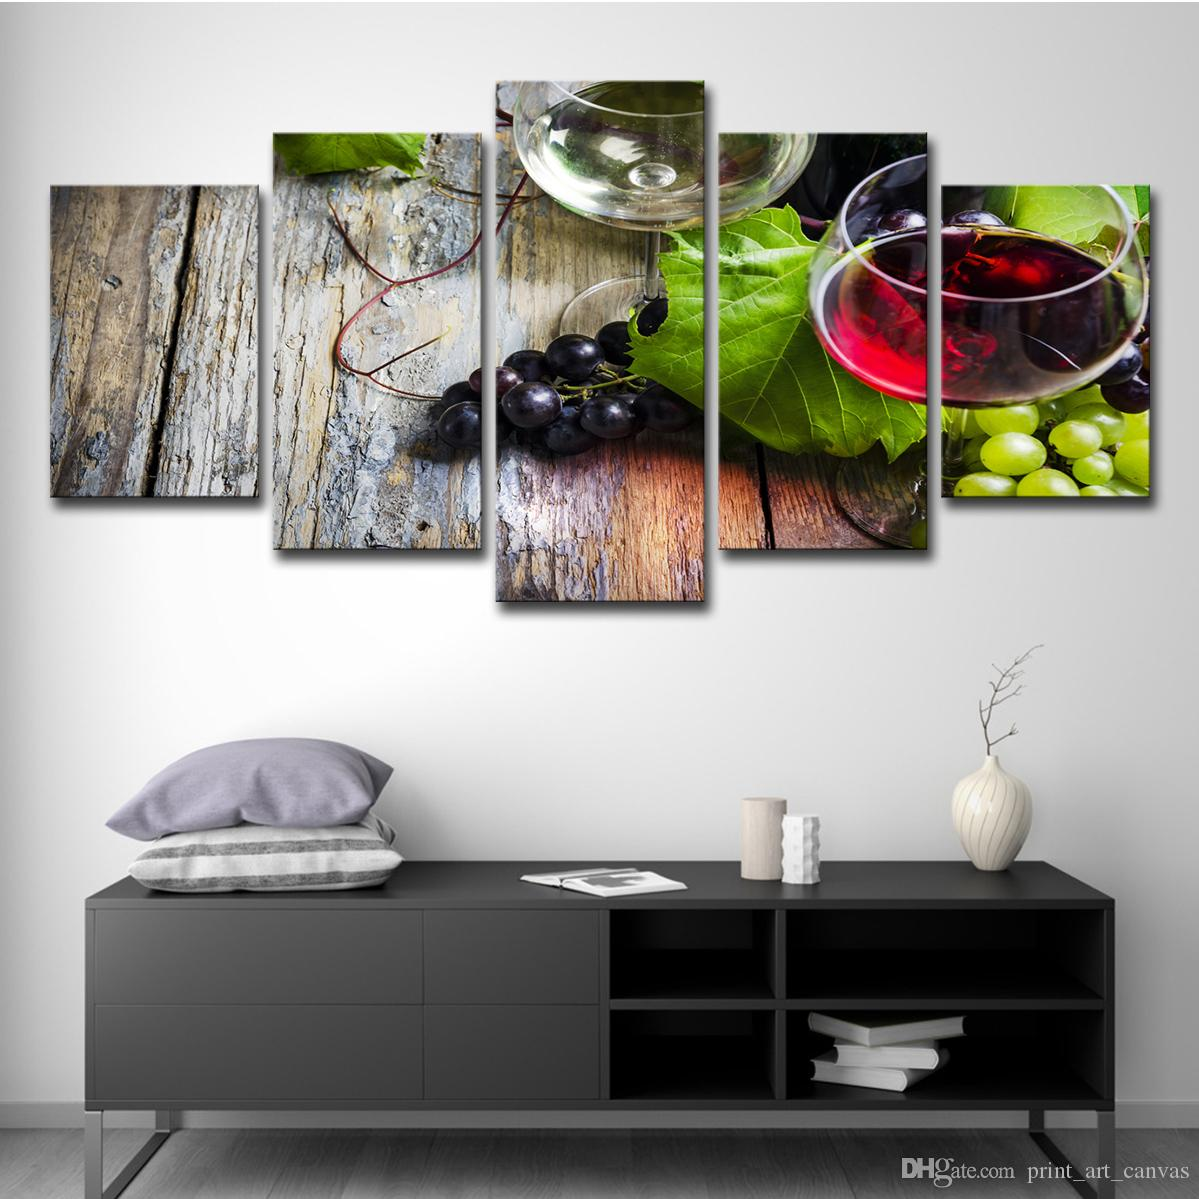 2019 Canvas Wall Art Pictures Hd Prints Kitchen Decor Grape Wine Bottle Paintings Fruit And Cup Poster Restaurant Wall Art Unframed From